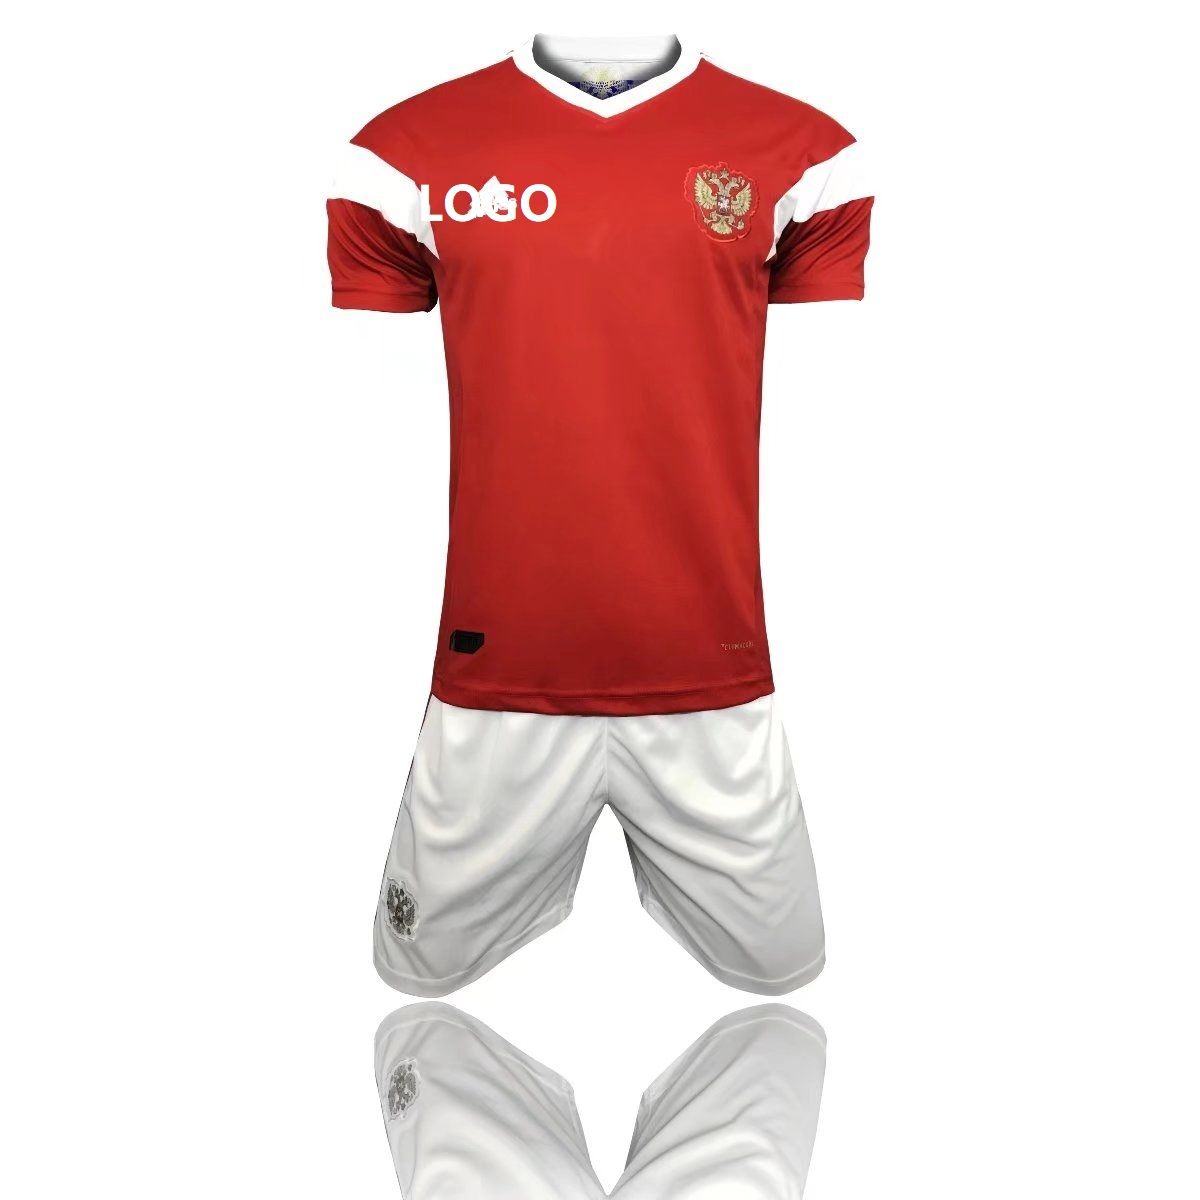 new style 8febf fda48 2018 Russia World Cup Adult Russia Home Red white Soccer Uniform Men  Football Kits Custom Name Number